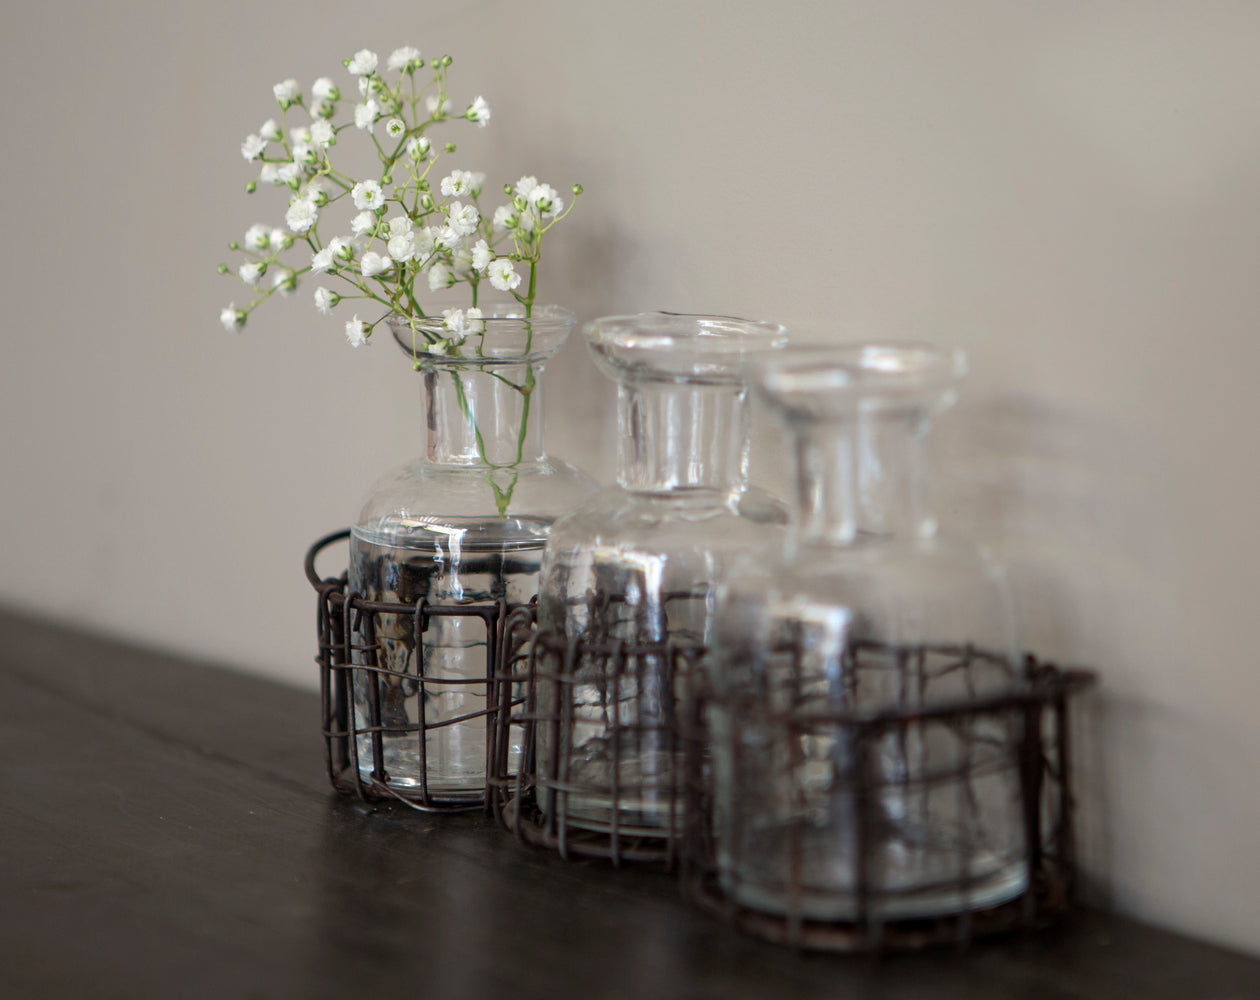 Set of 3 glass bottles in wire holder